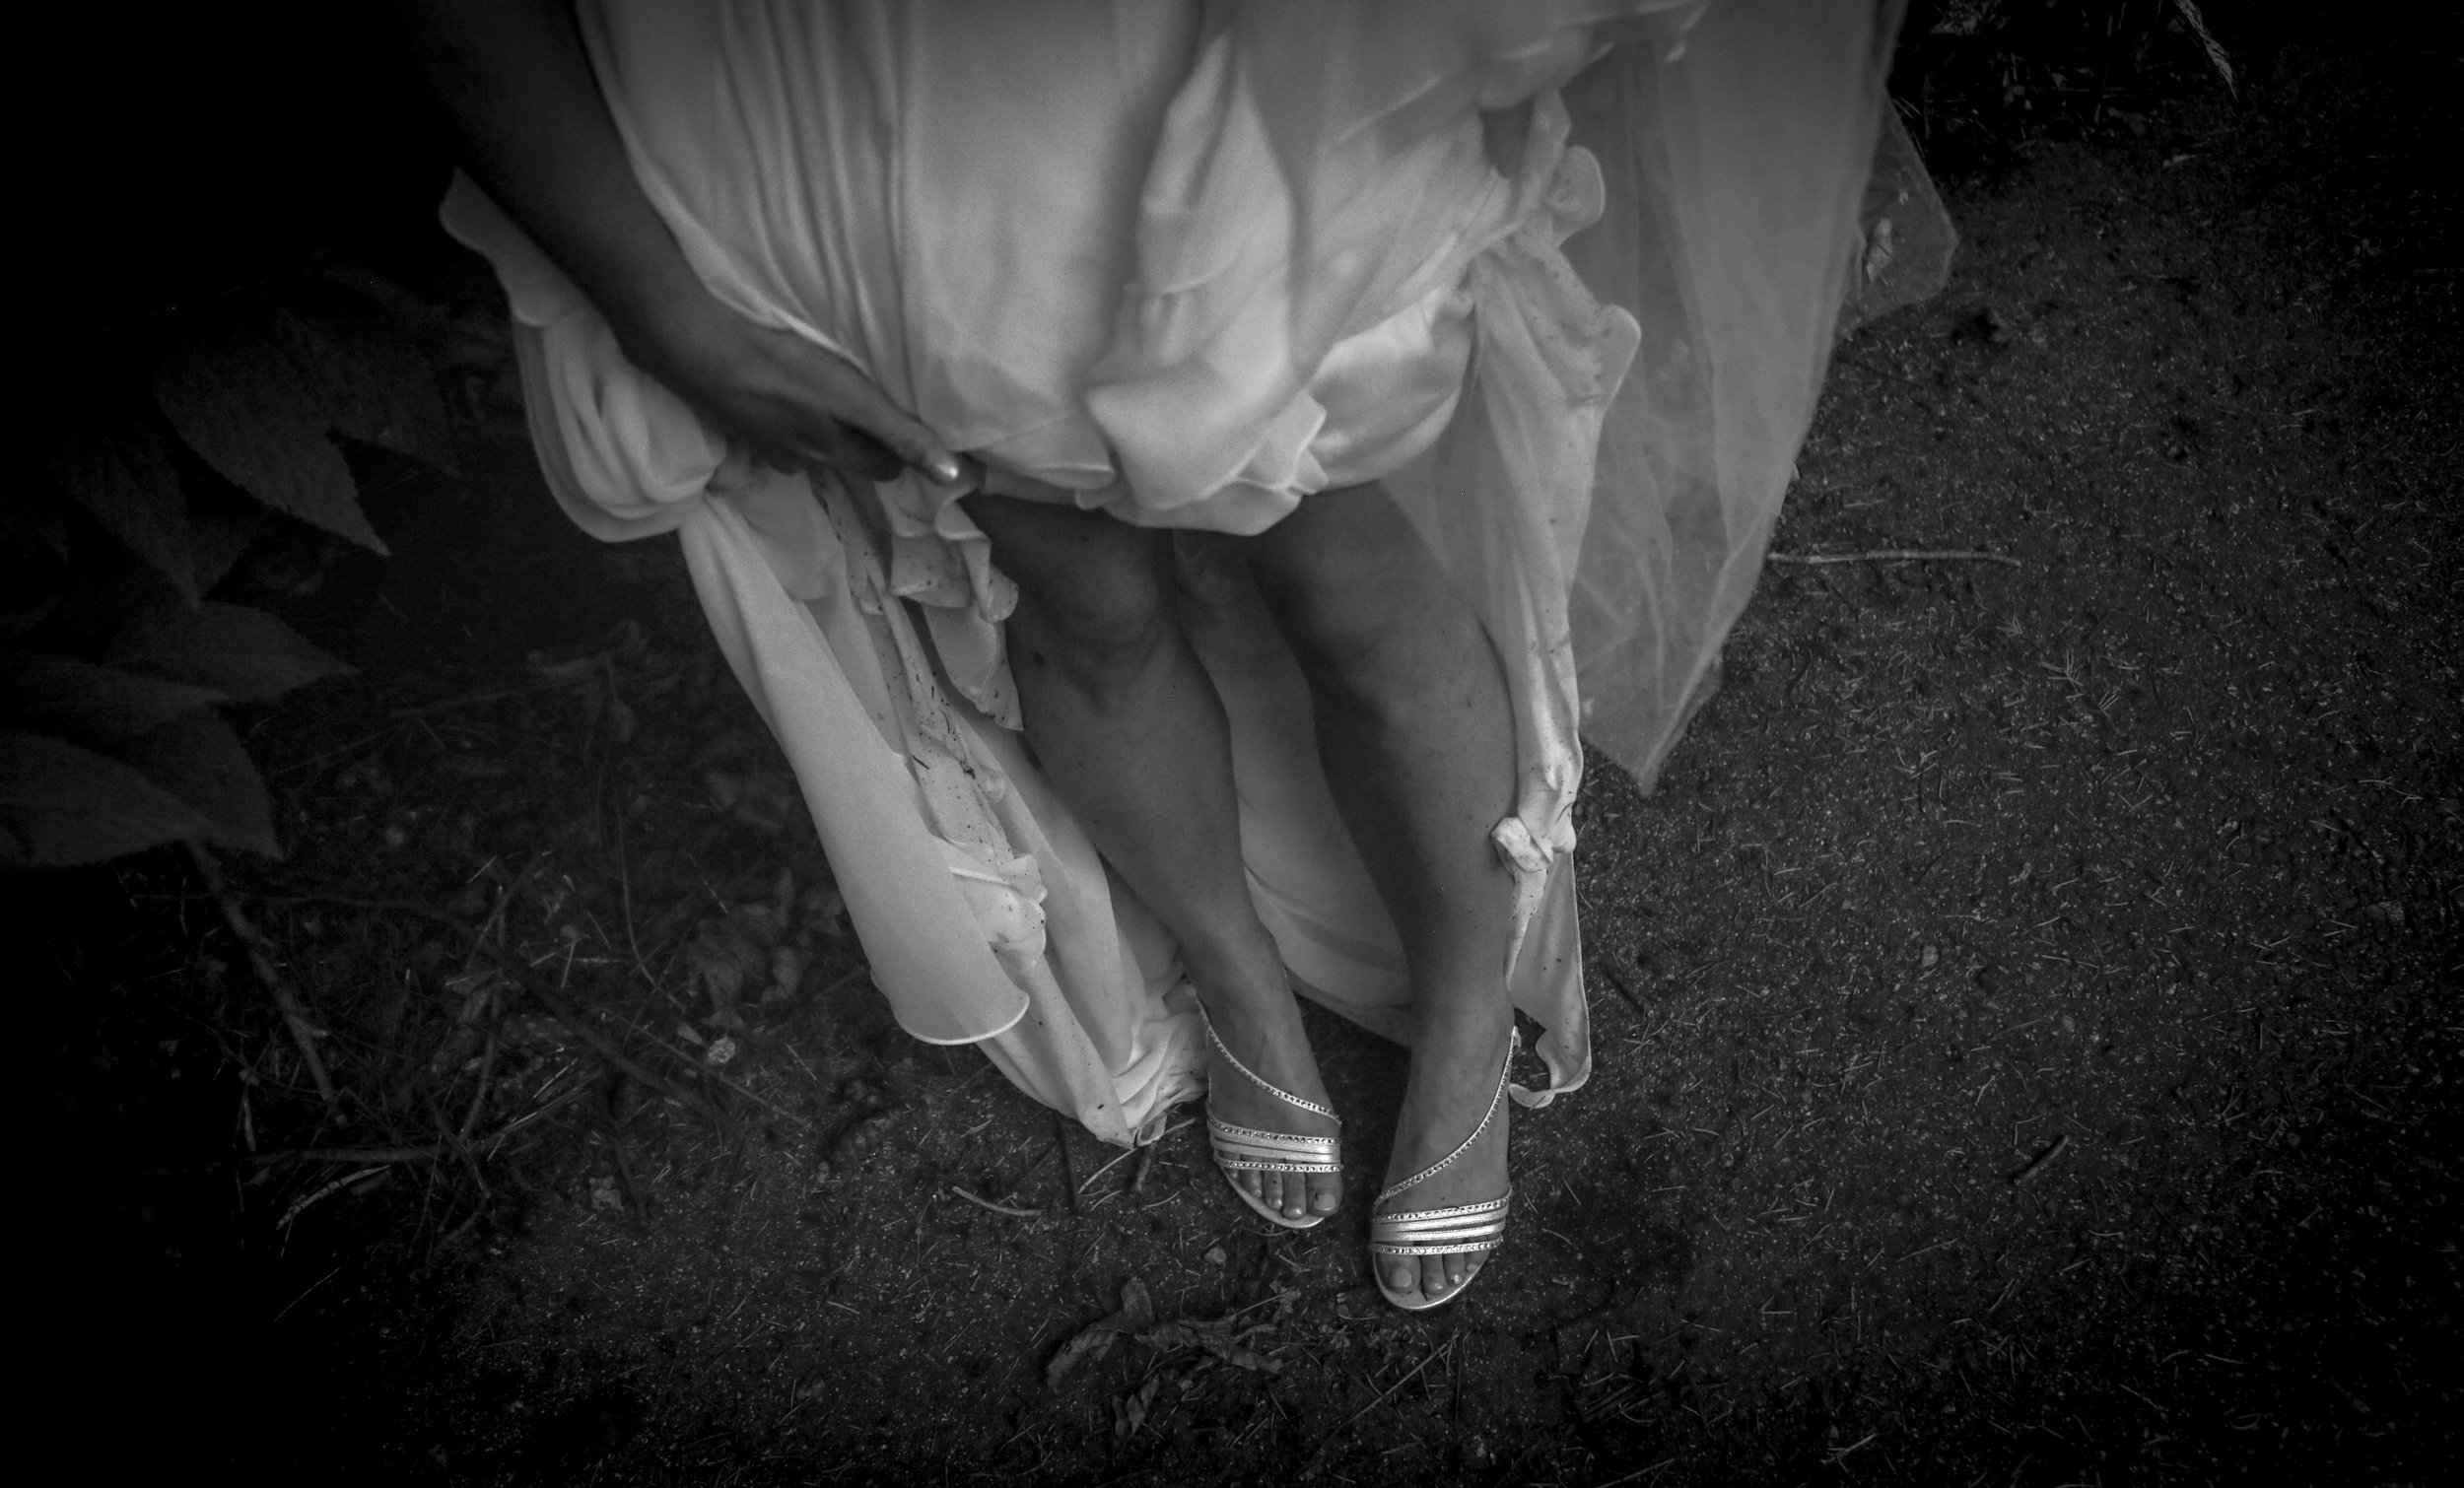 Emily&AaronWedding (368 of 572).jpg